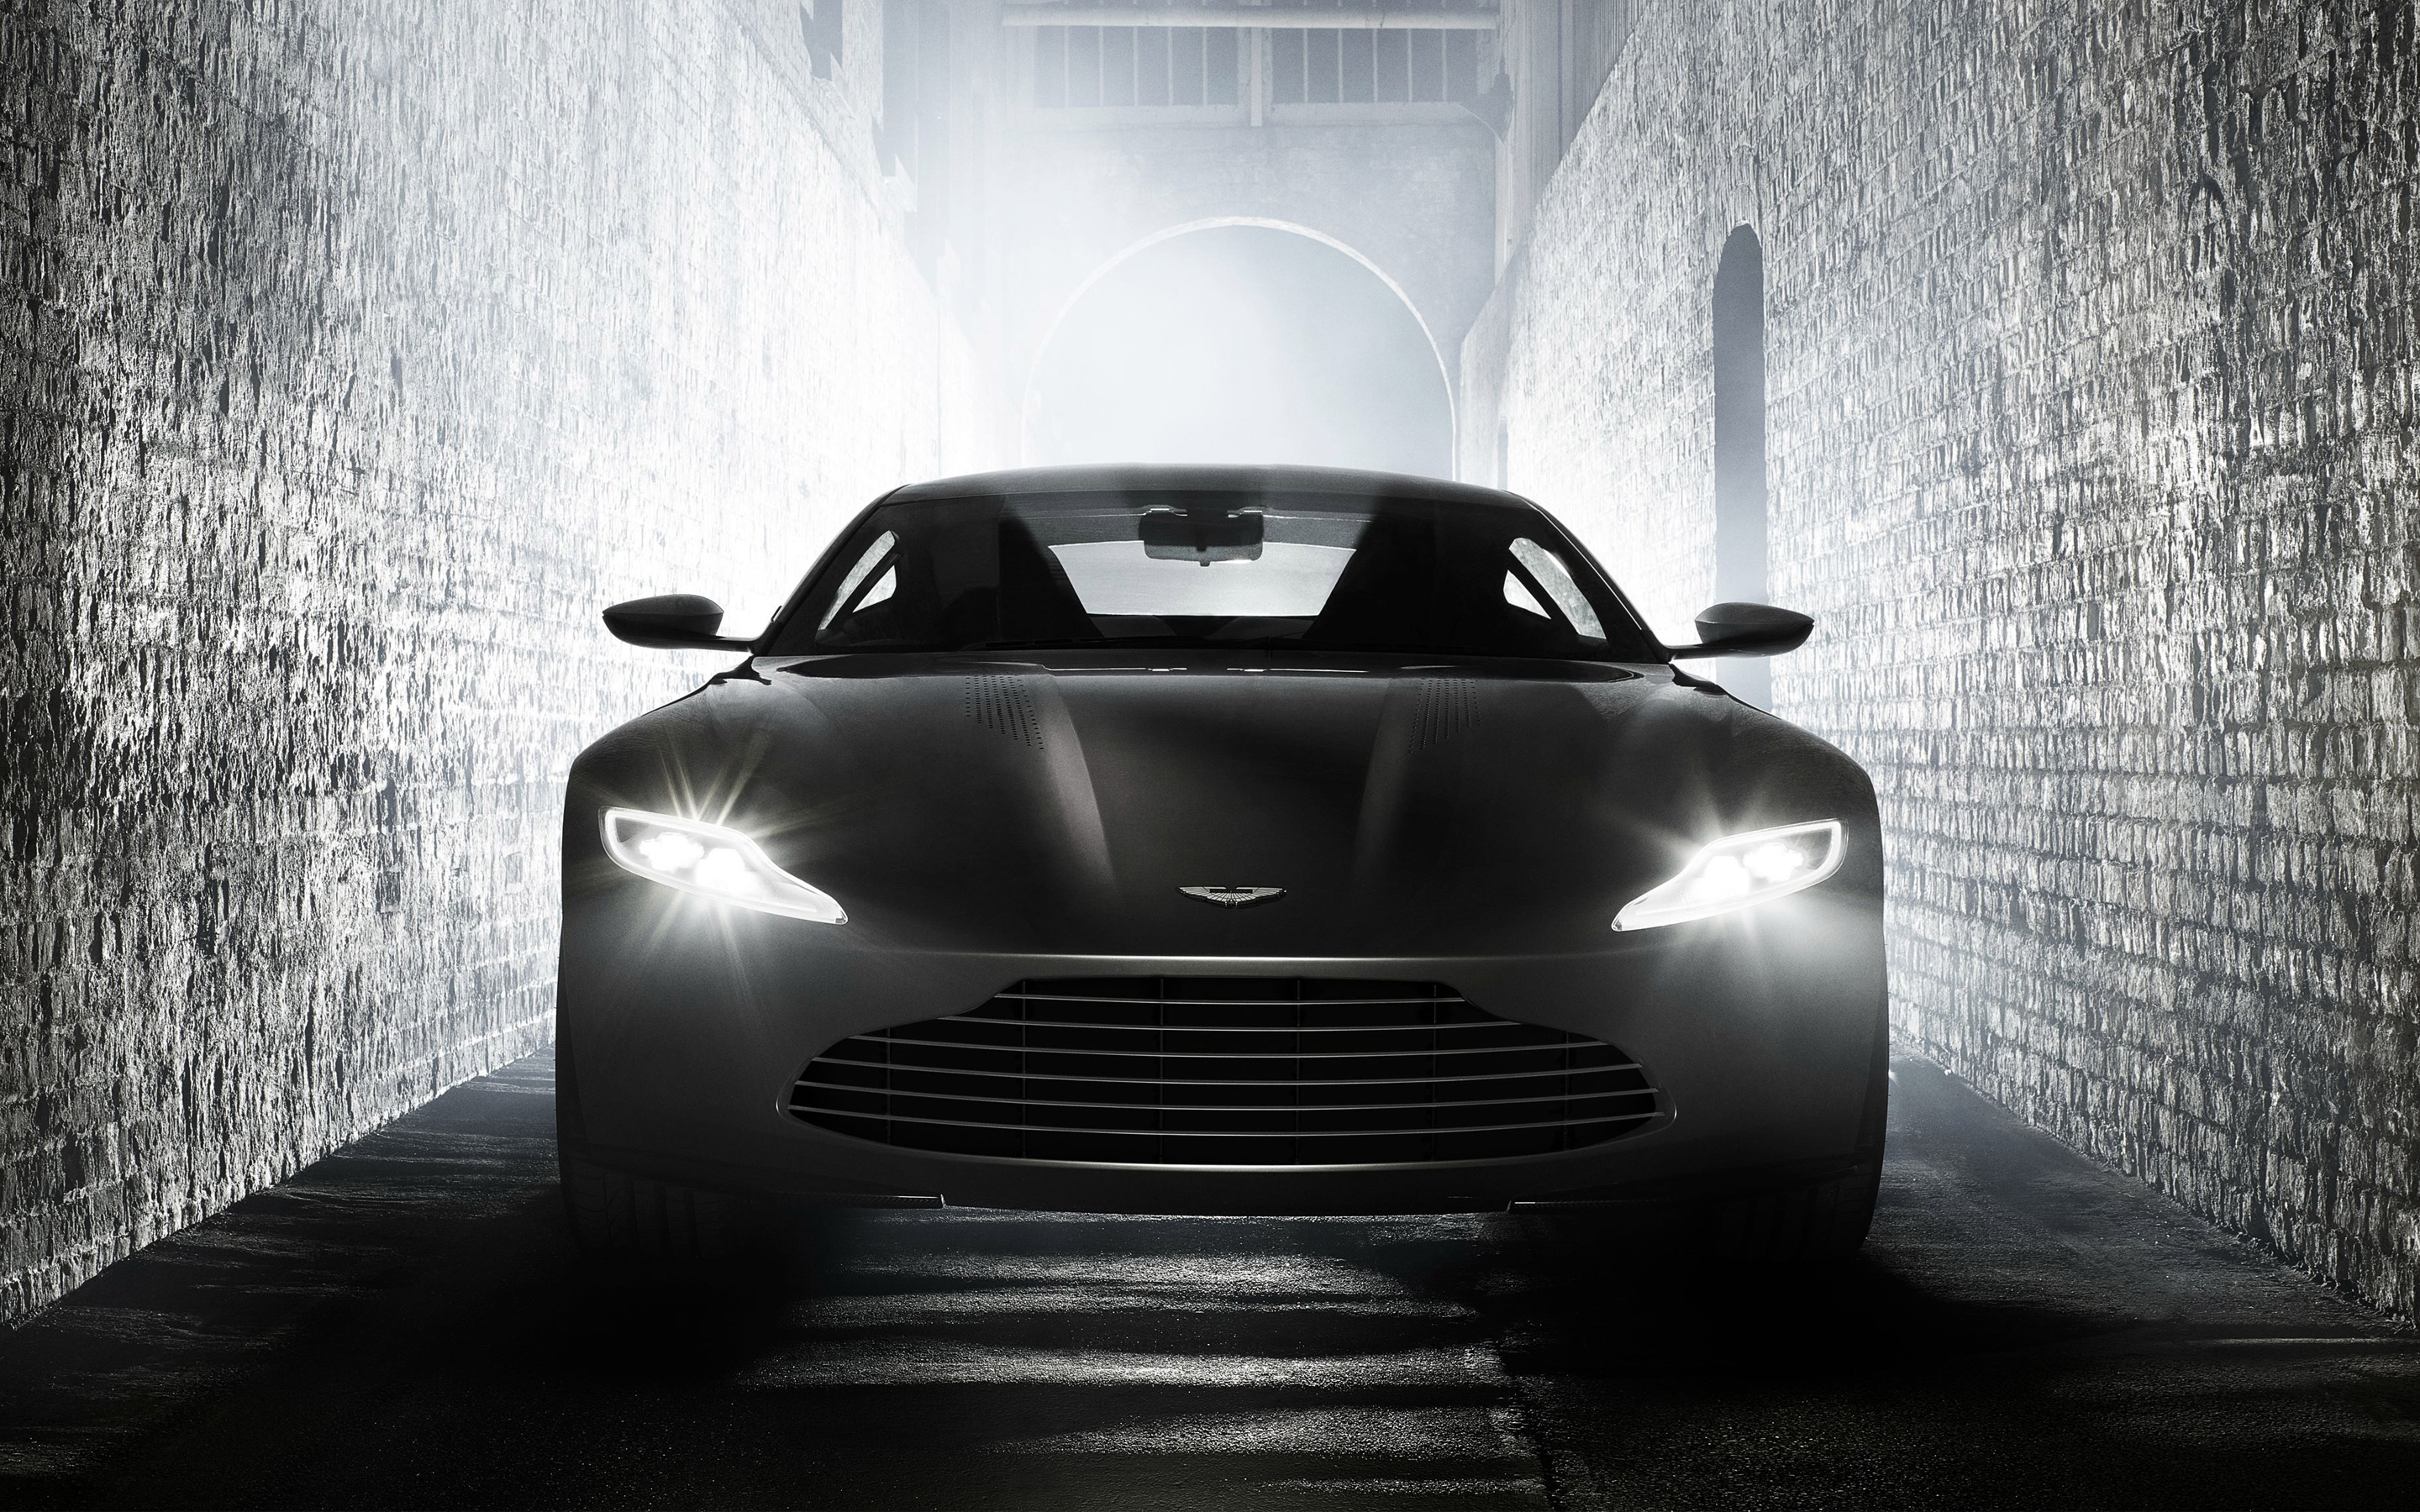 Aston 4k Wallpapers For Your Desktop Or Mobile Screen Free